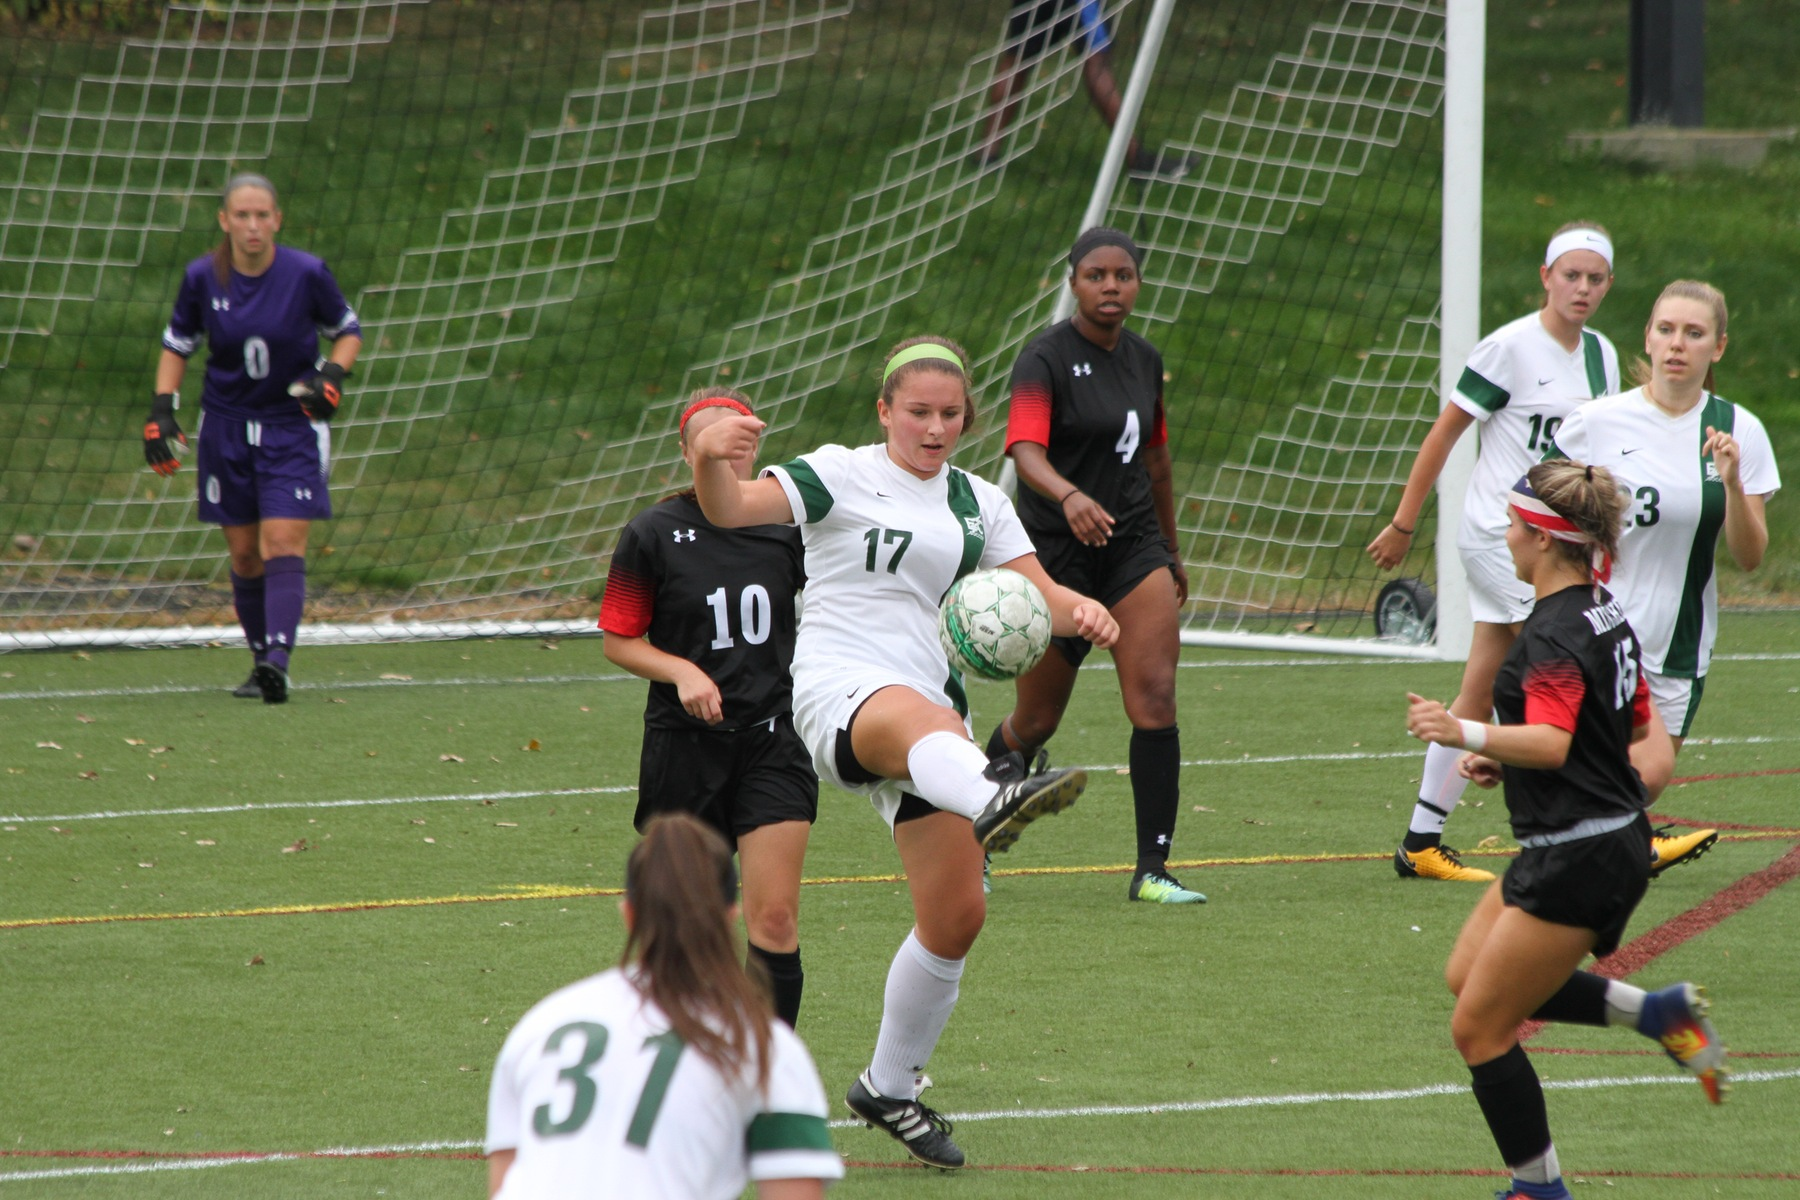 Late Flurry Lifts Blazer Women's Soccer To Convincing Win